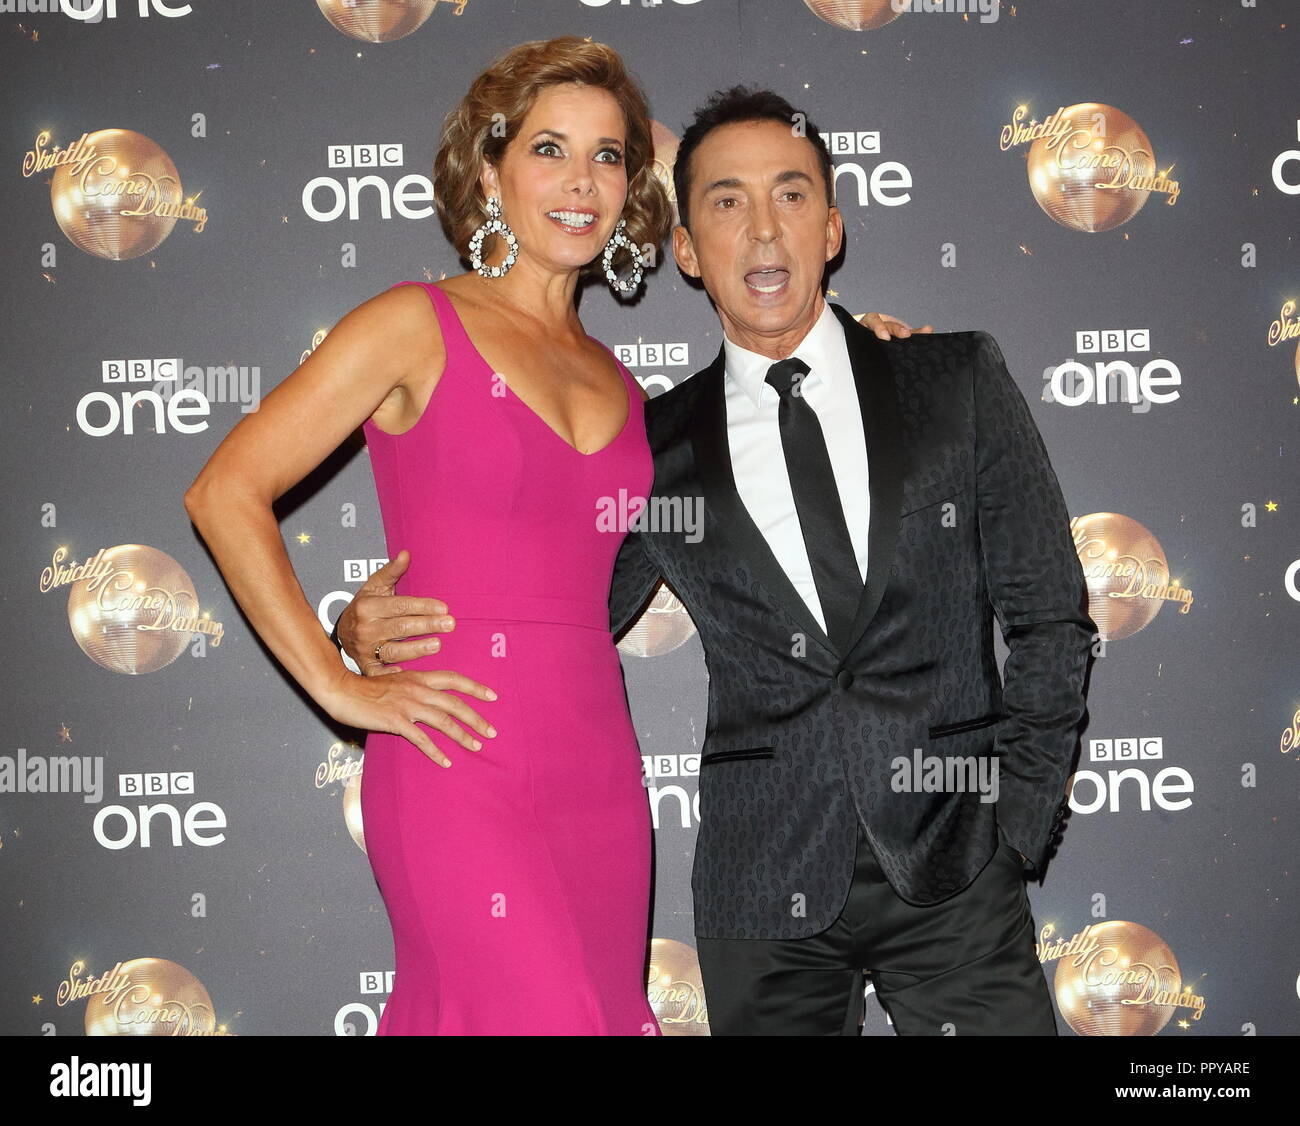 Dame Darcey Bussell Stock Photos & Dame Darcey Bussell Stock